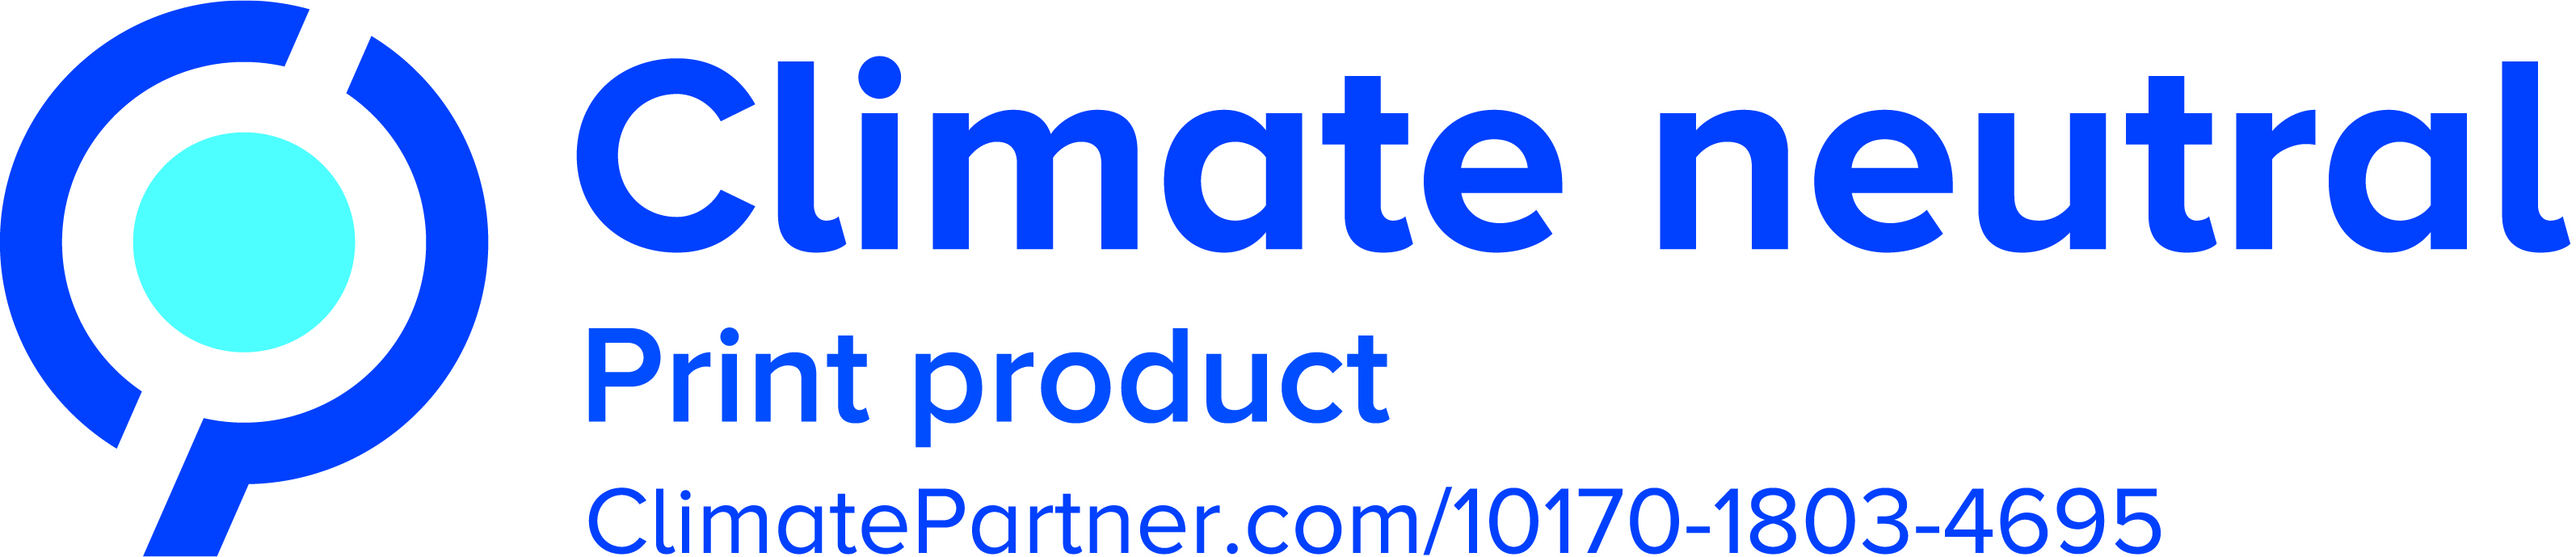 CO2 neutral print partner